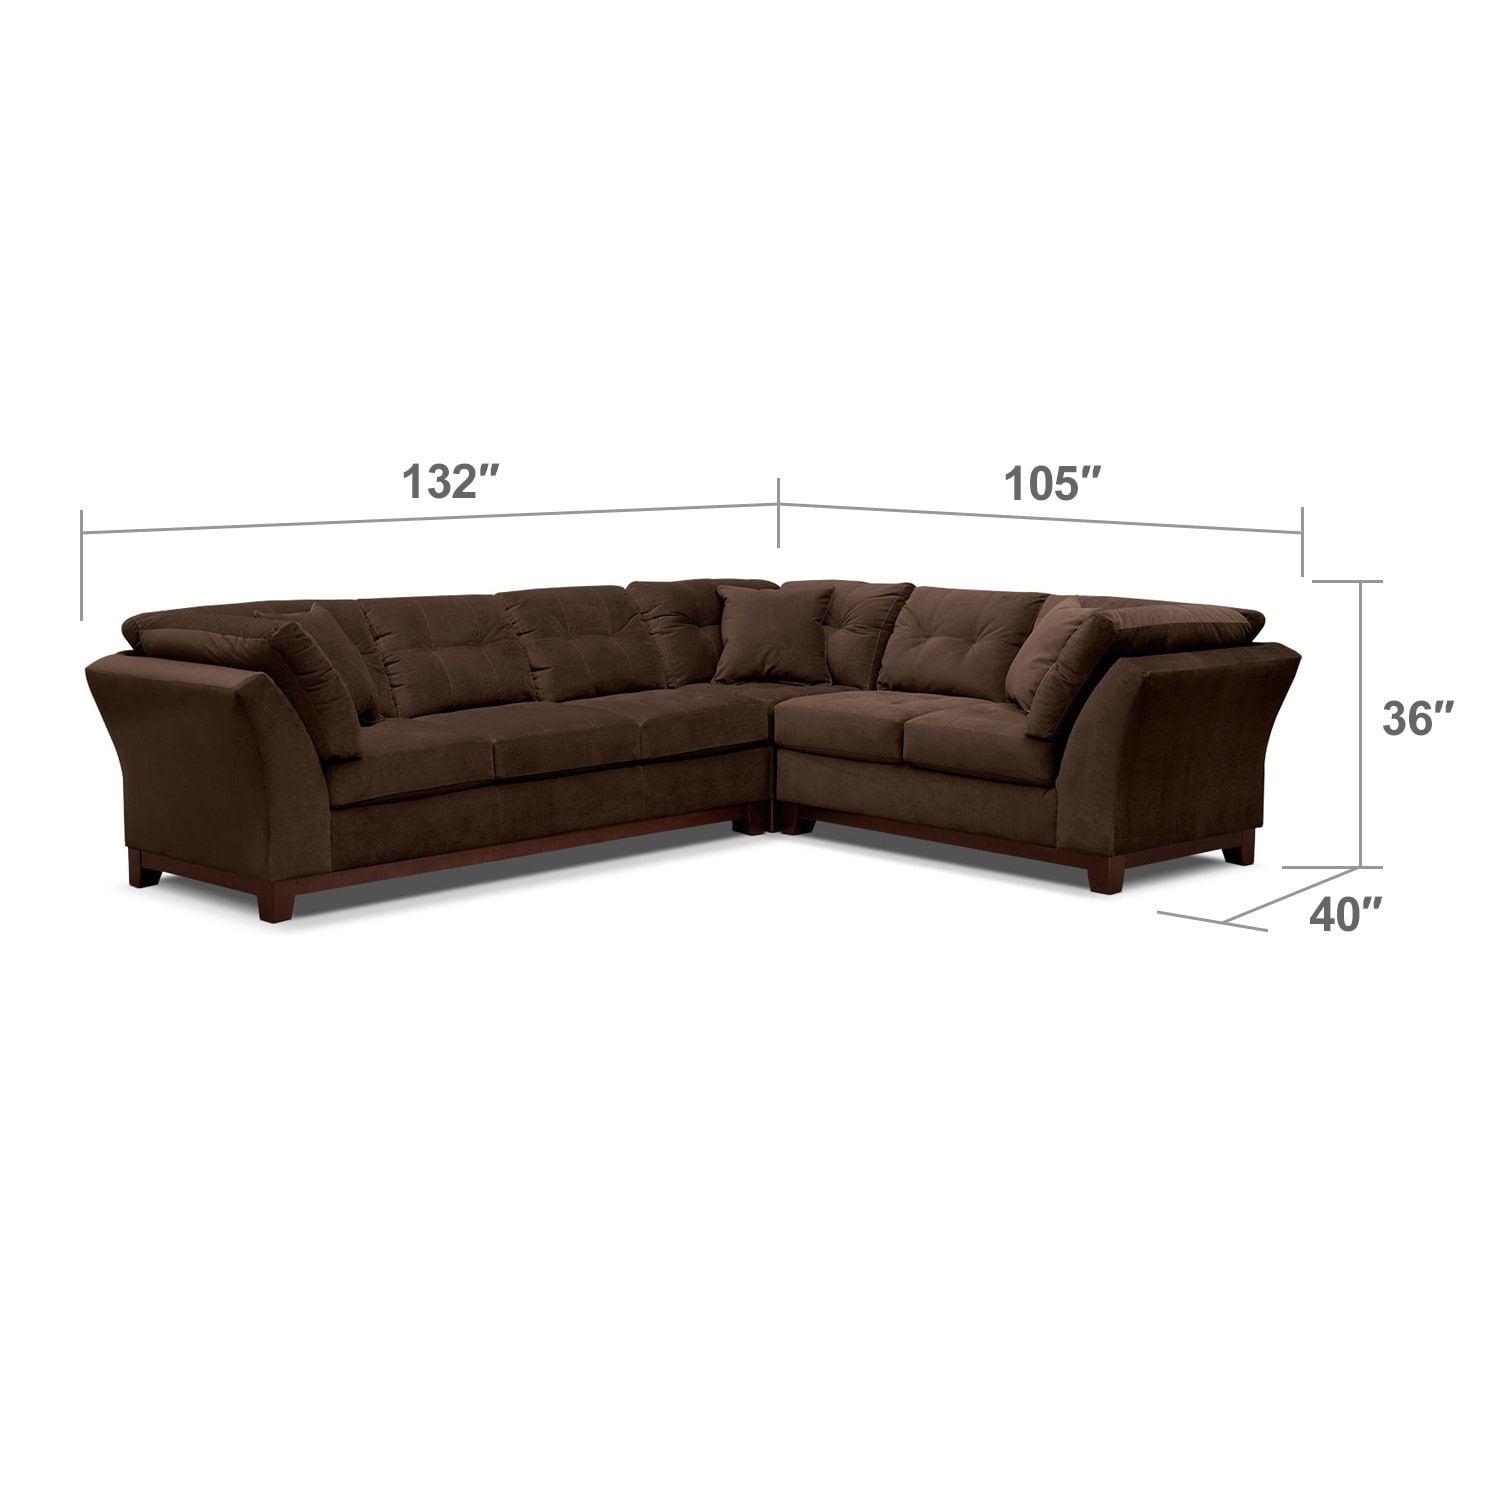 Living Room Furniture - Solace Chocolate II 3 Pc. Sectional (Reverse)